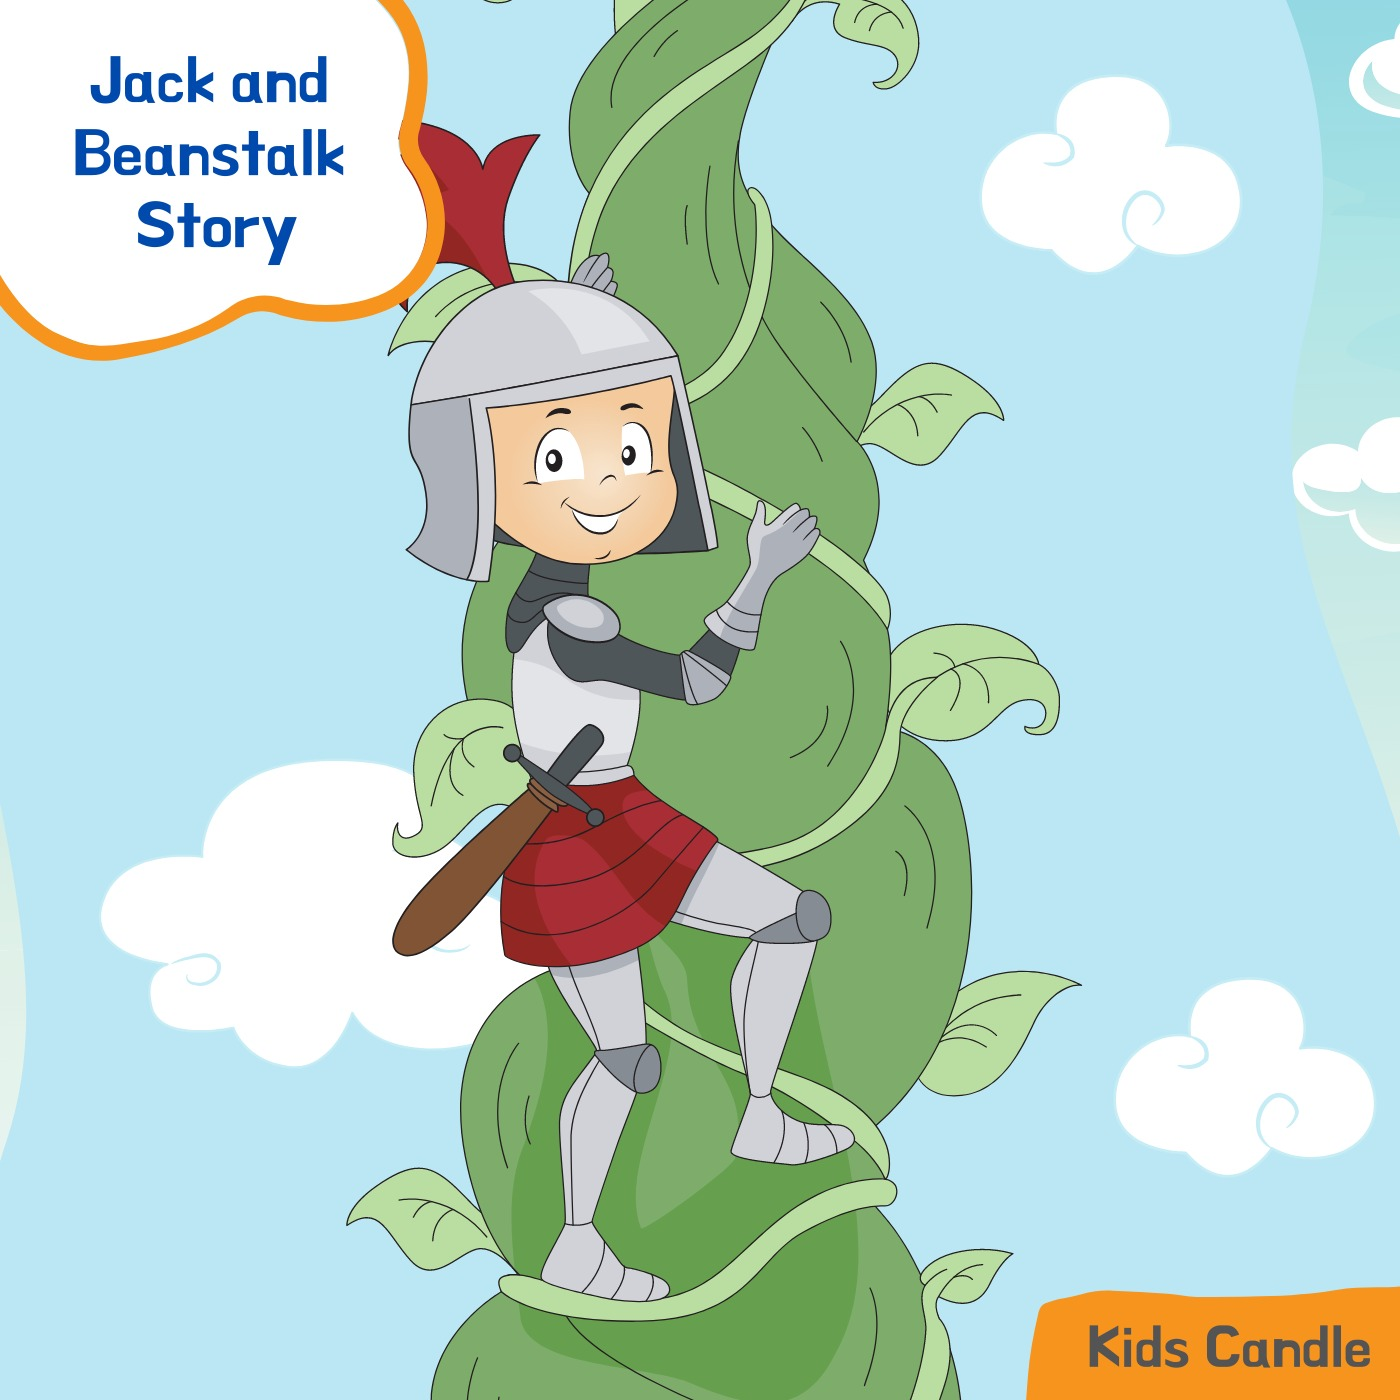 Classic story of Jack and Beanstalk